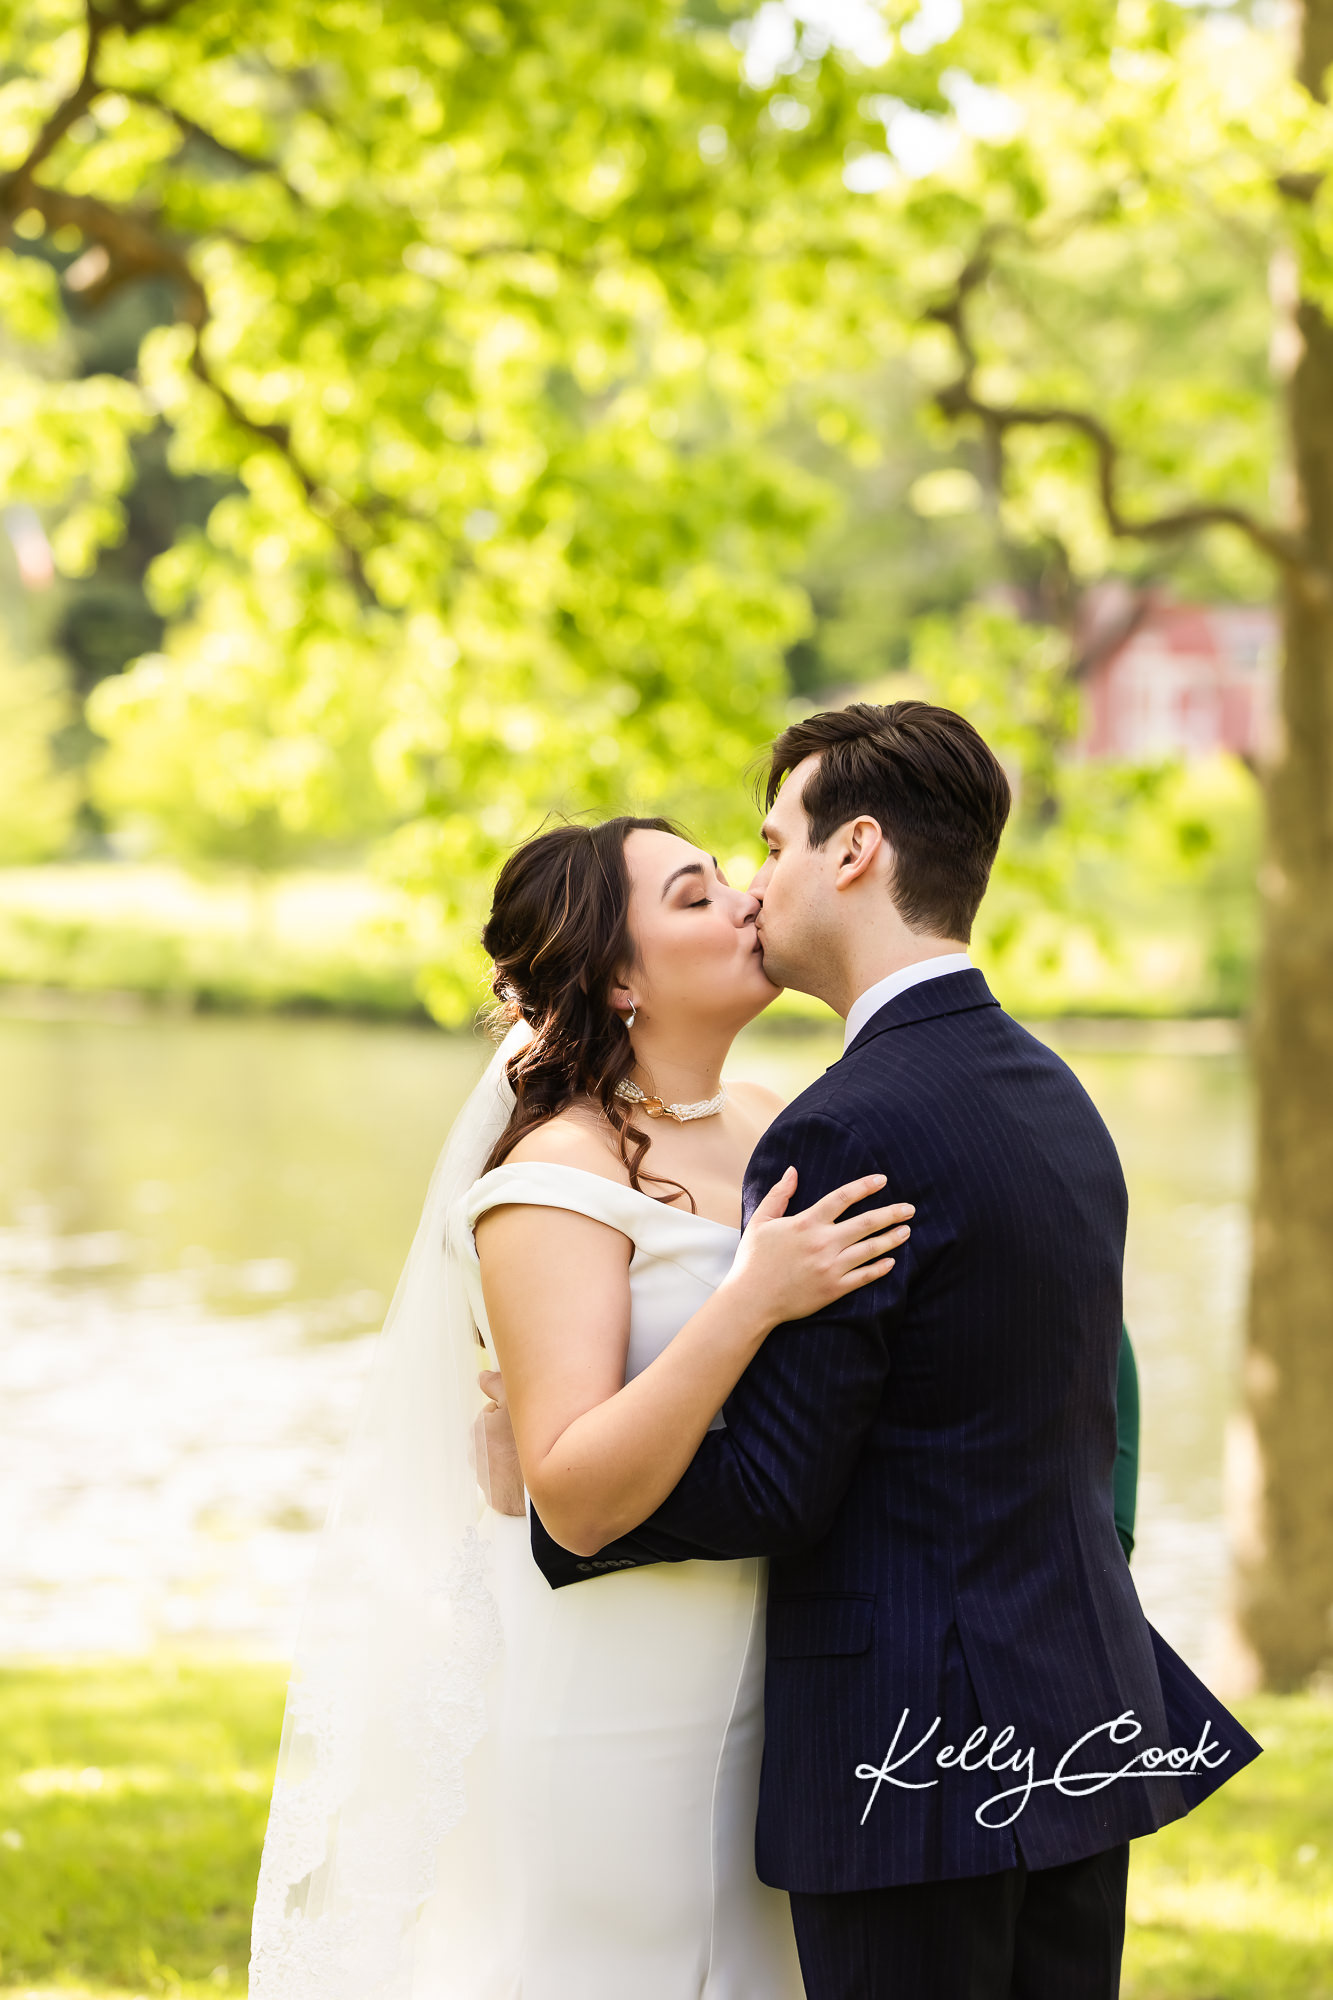 A couple's first kiss at their backyard micro wedding in St. Louis